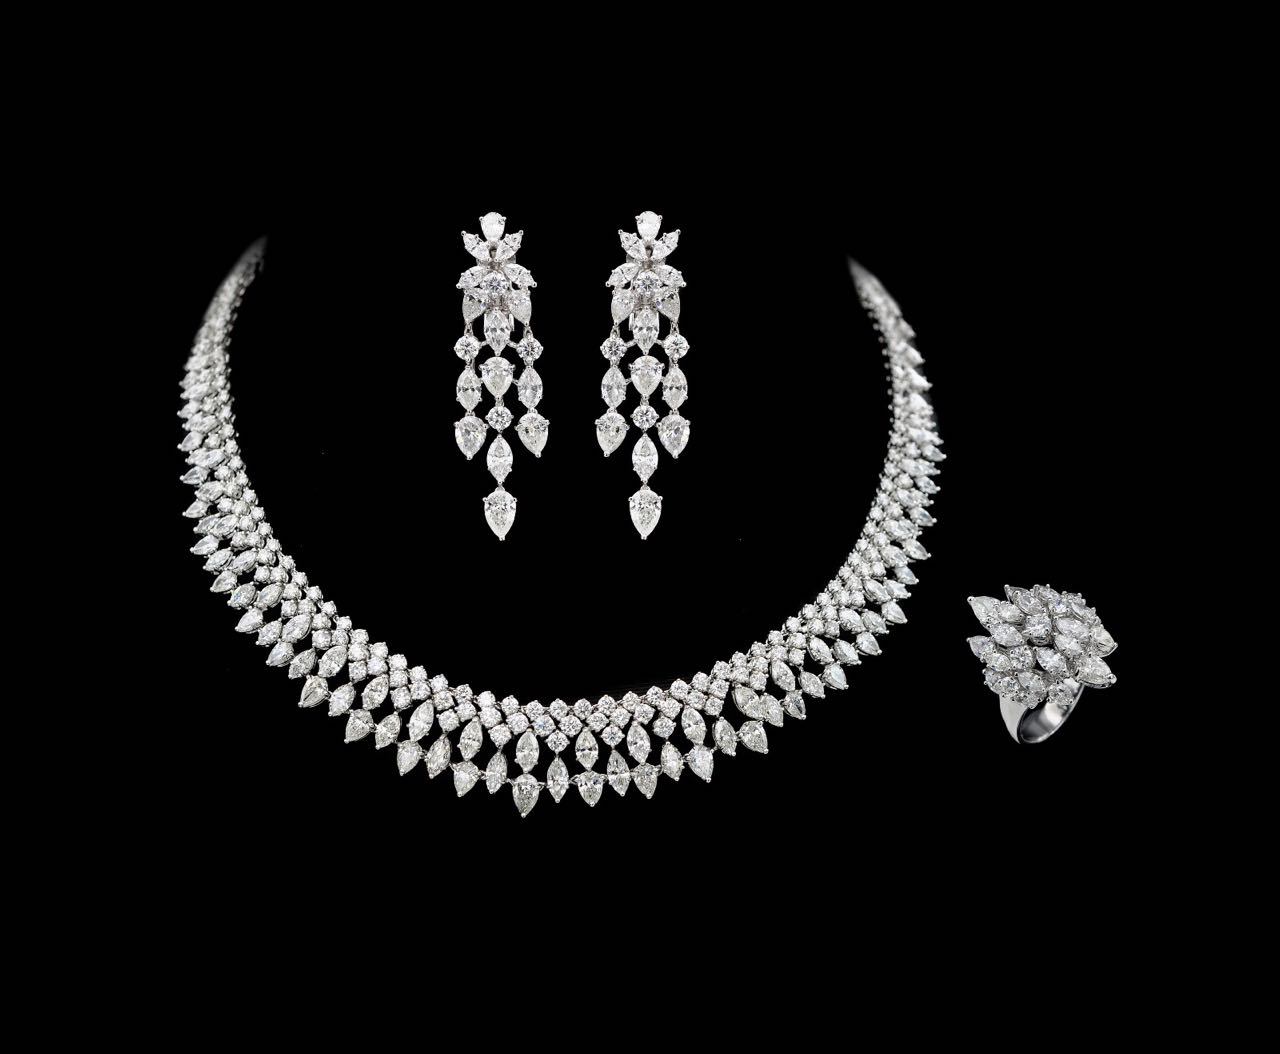 Diamond necklace, earrings and ring set